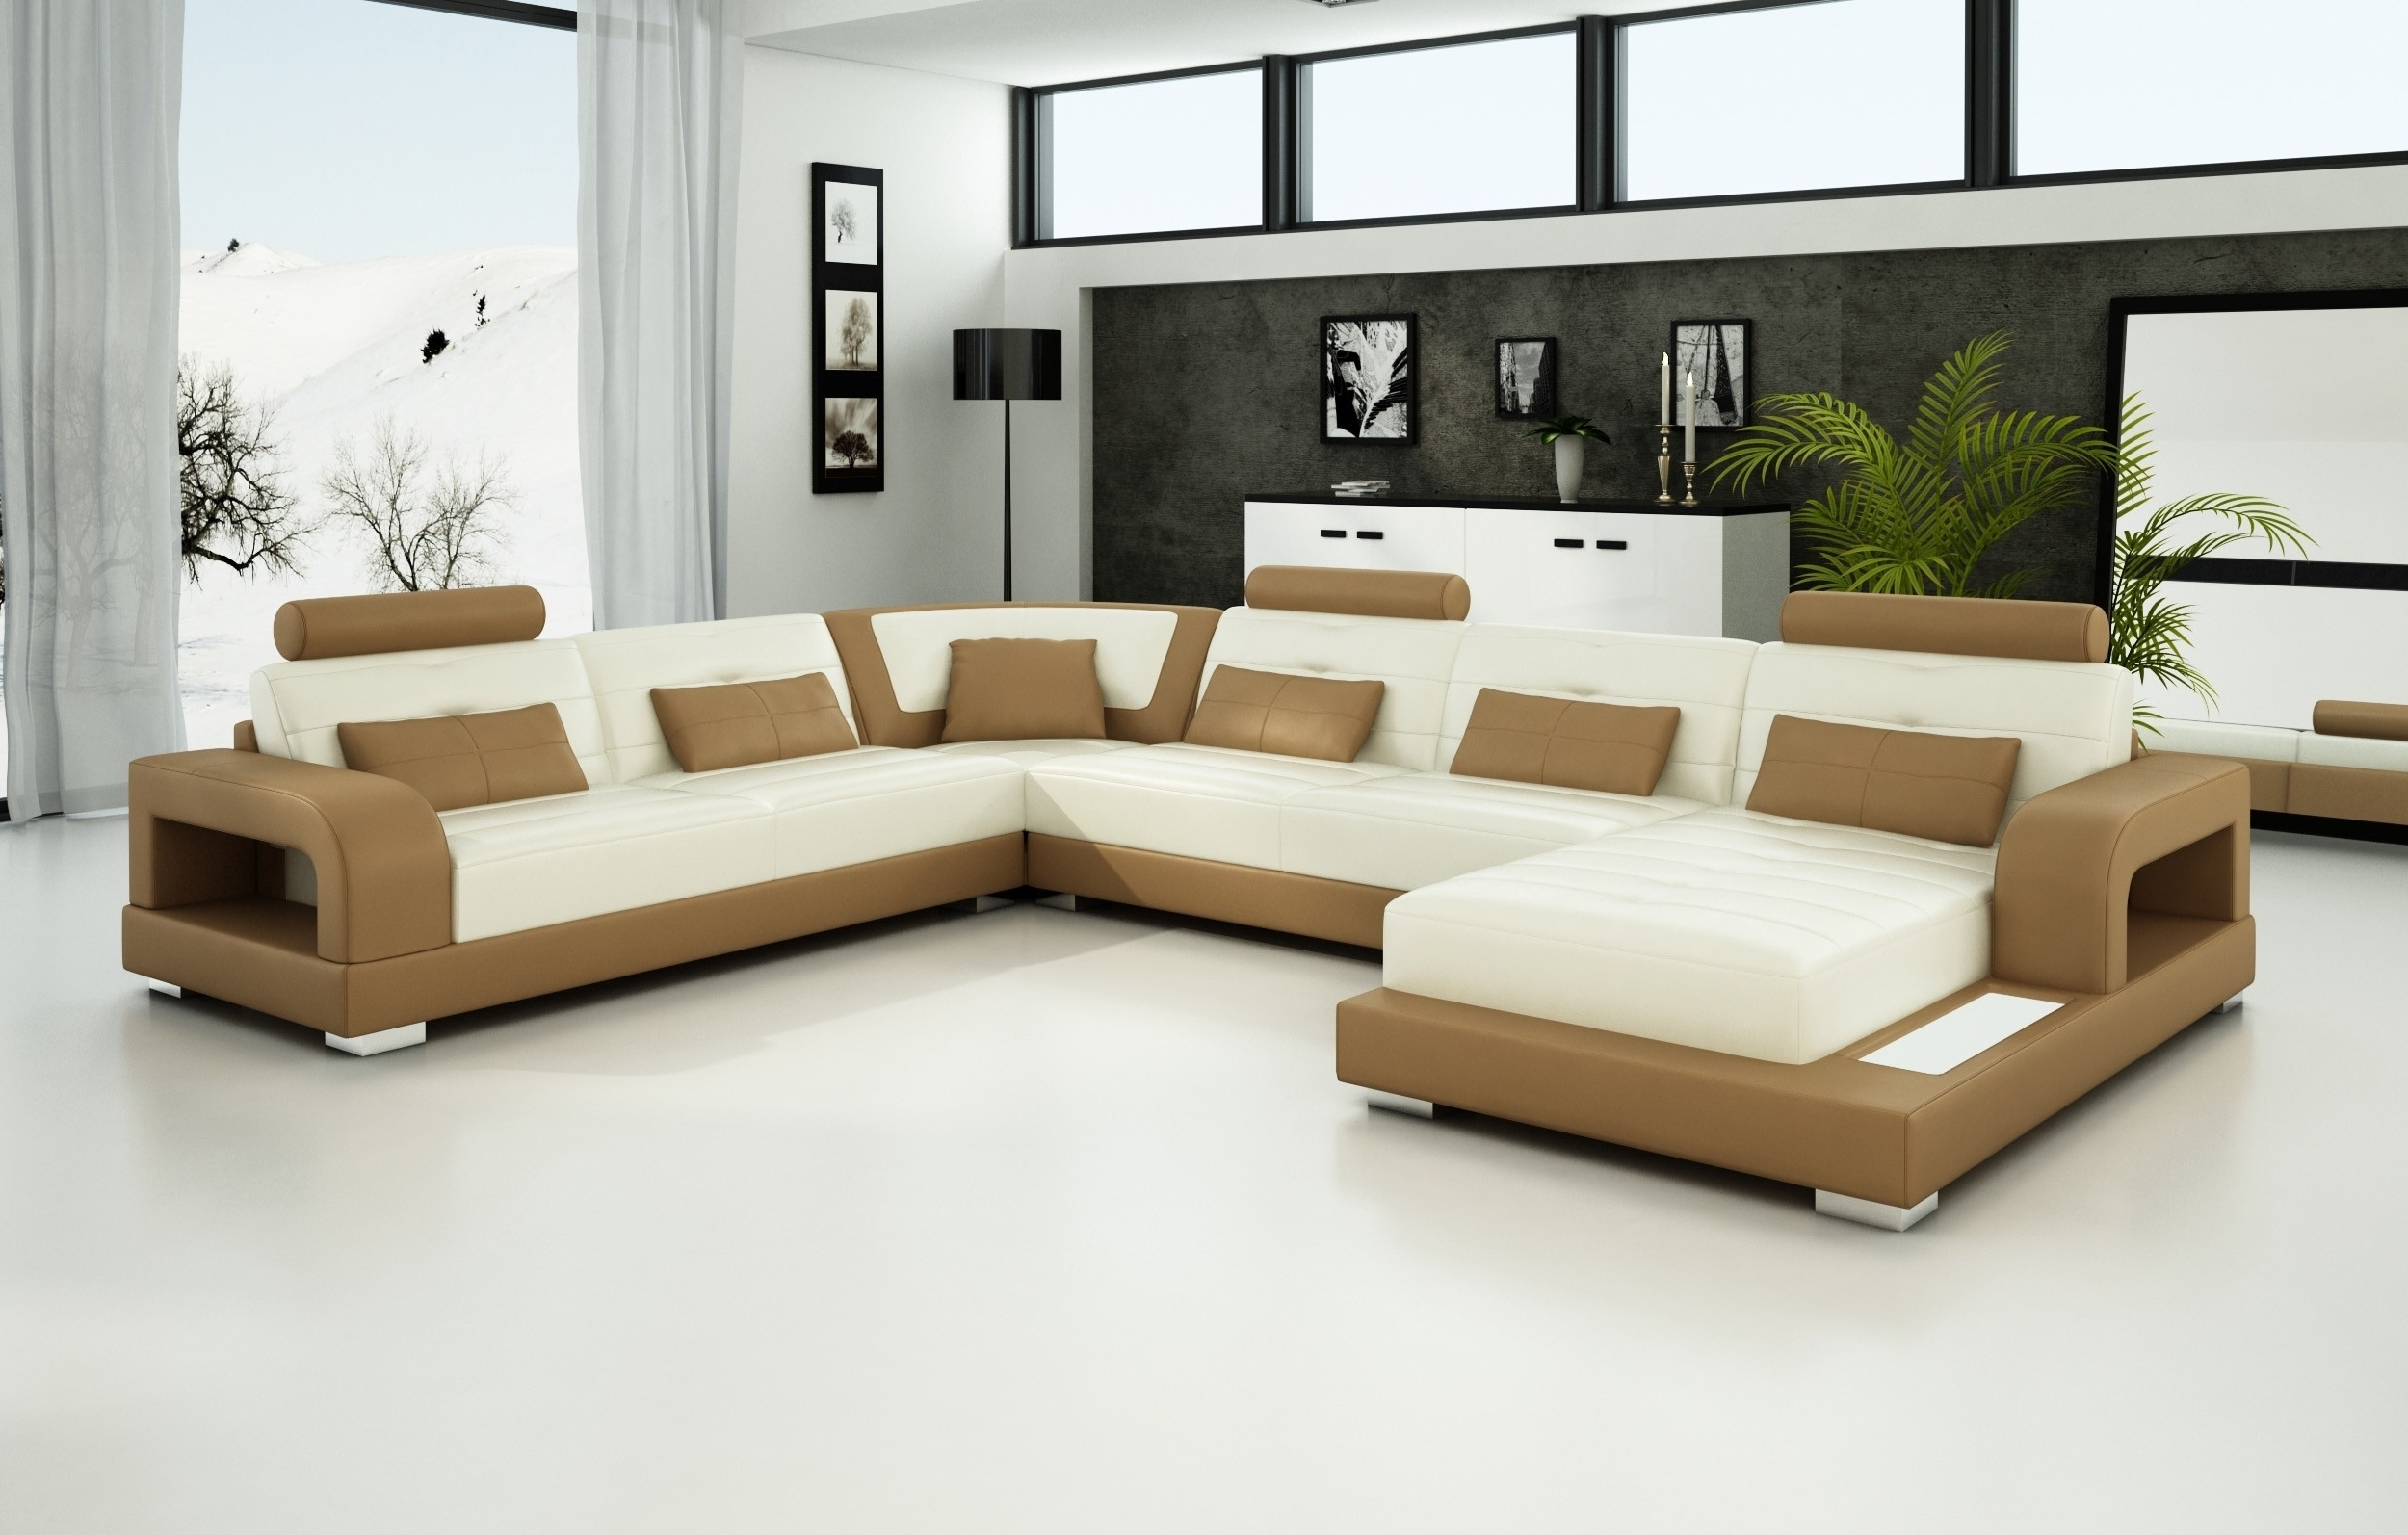 Top 20 Of Trinidad And Tobago Sectional Sofas Within Trinidad And Tobago Sectional Sofas (Image 10 of 10)